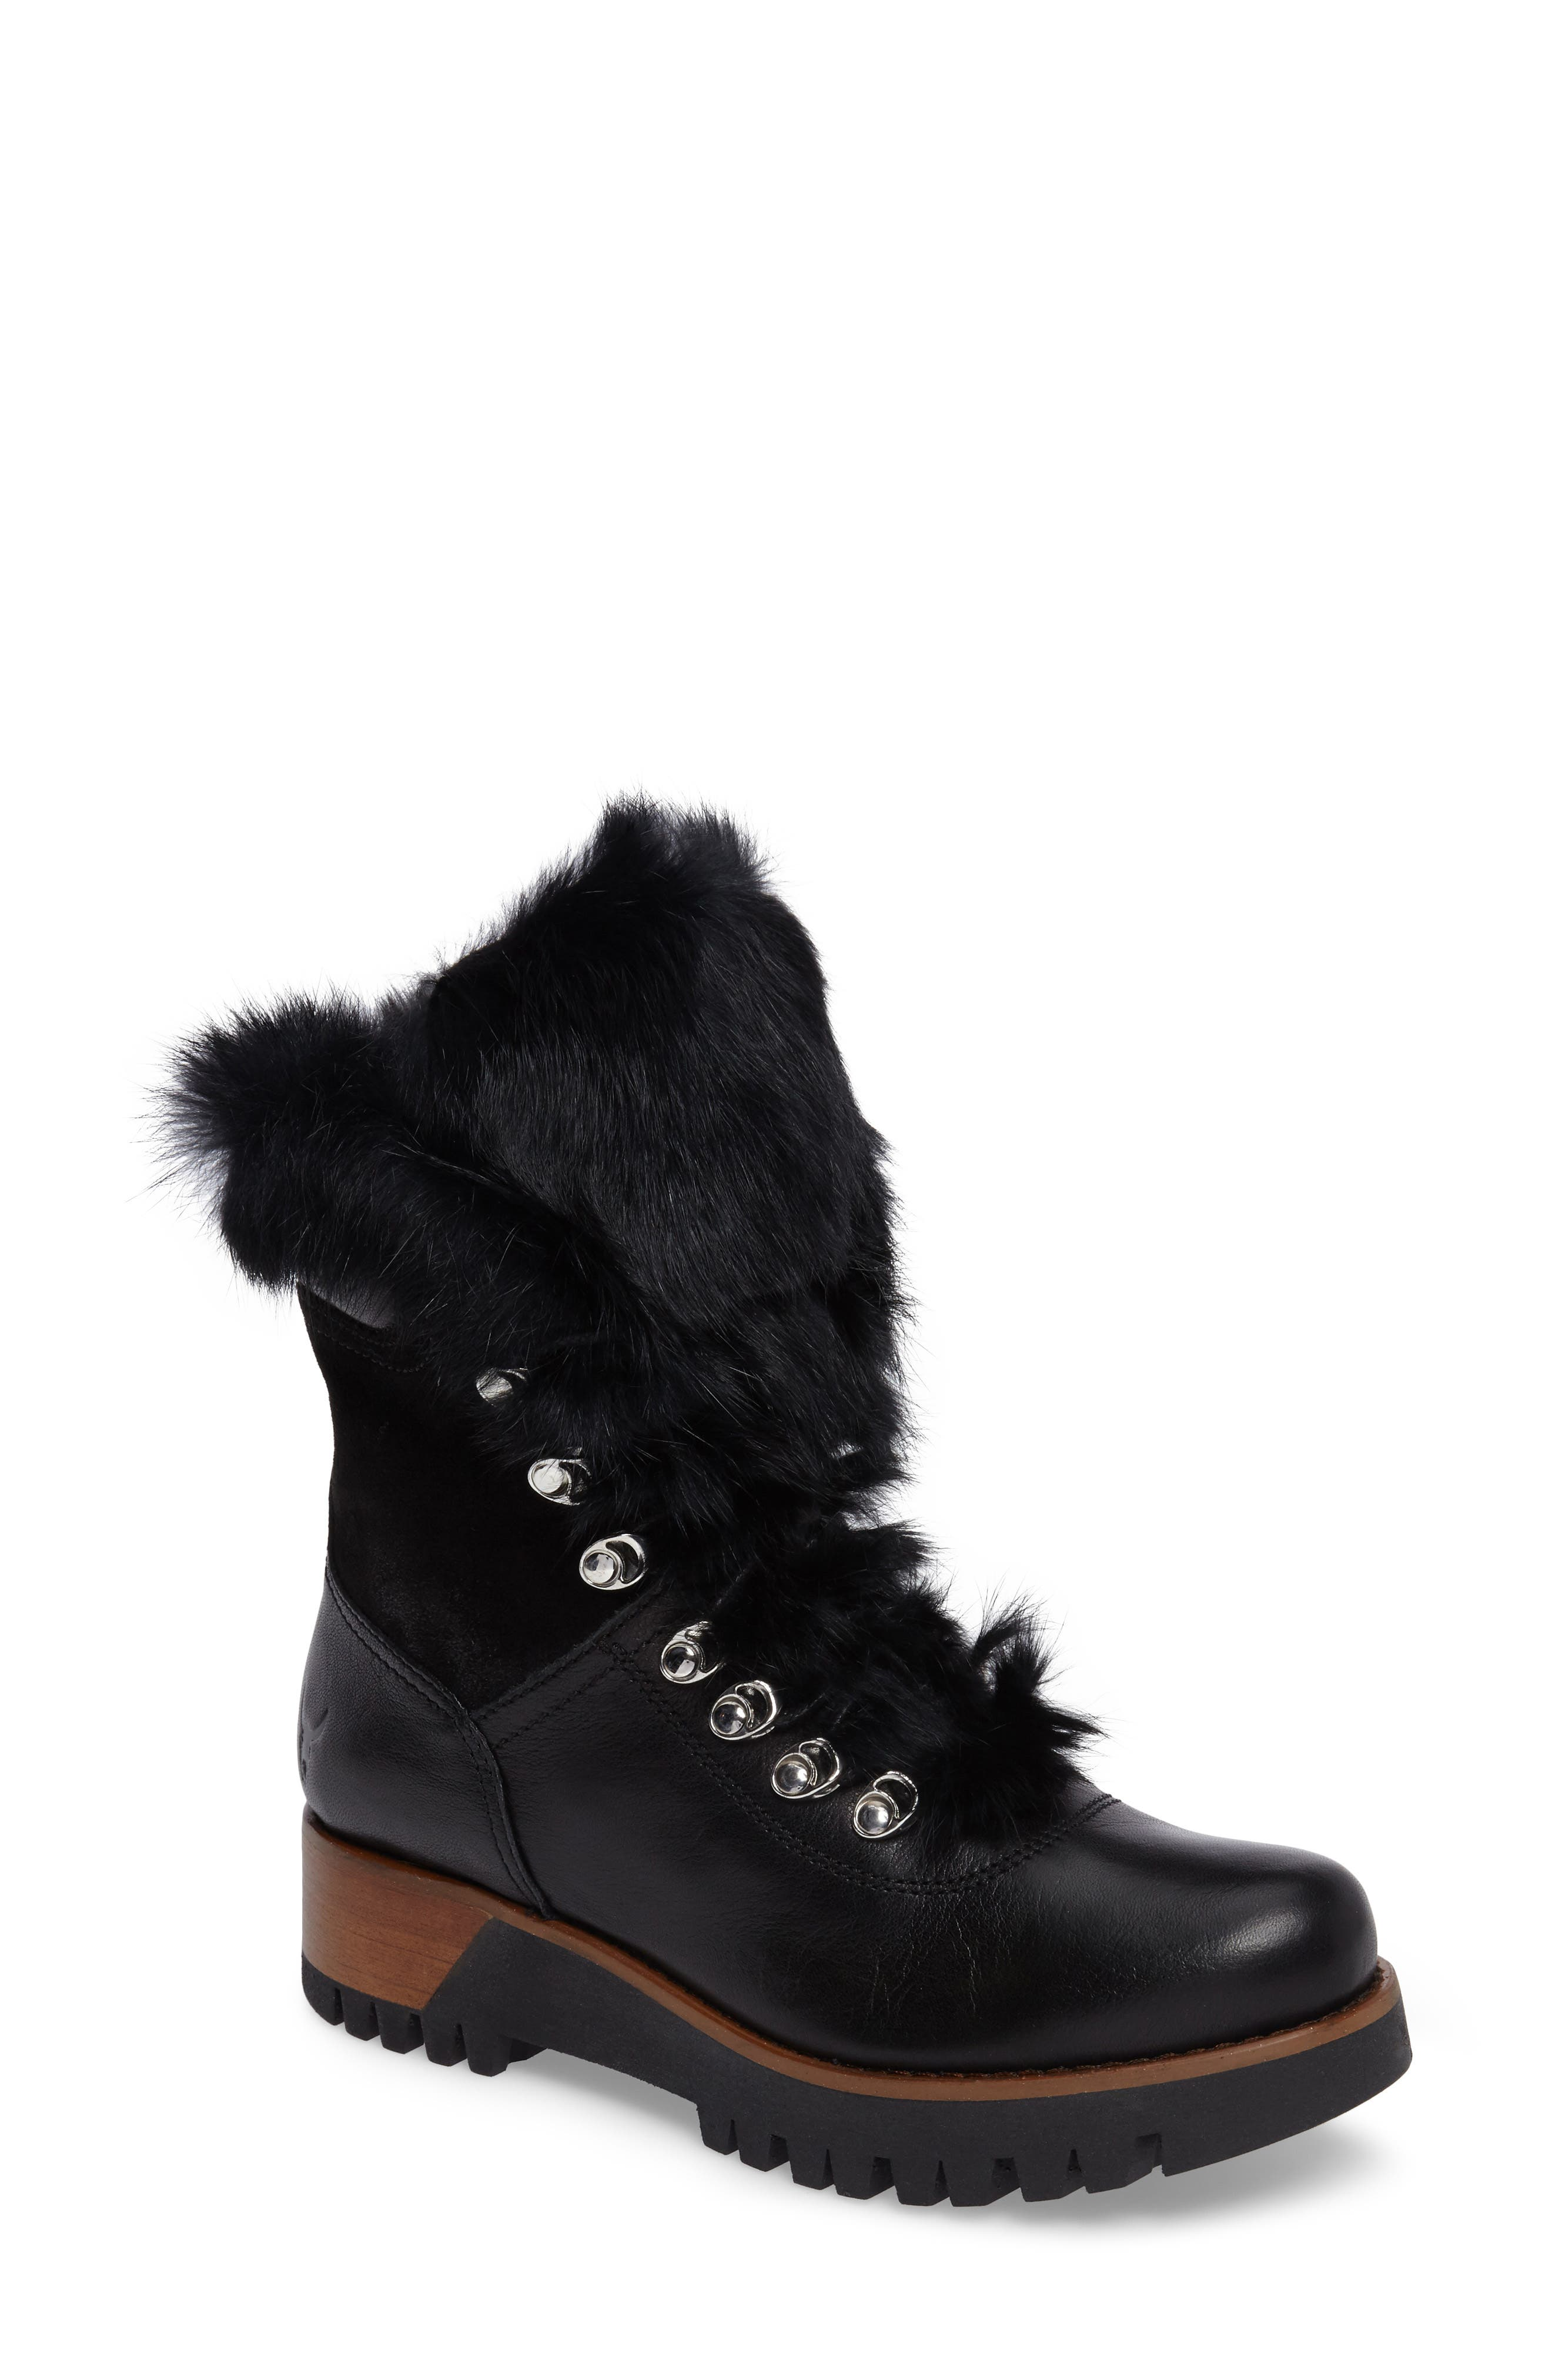 Tsar Genuine Rabbit Fur Boot,                         Main,                         color, Black Leather